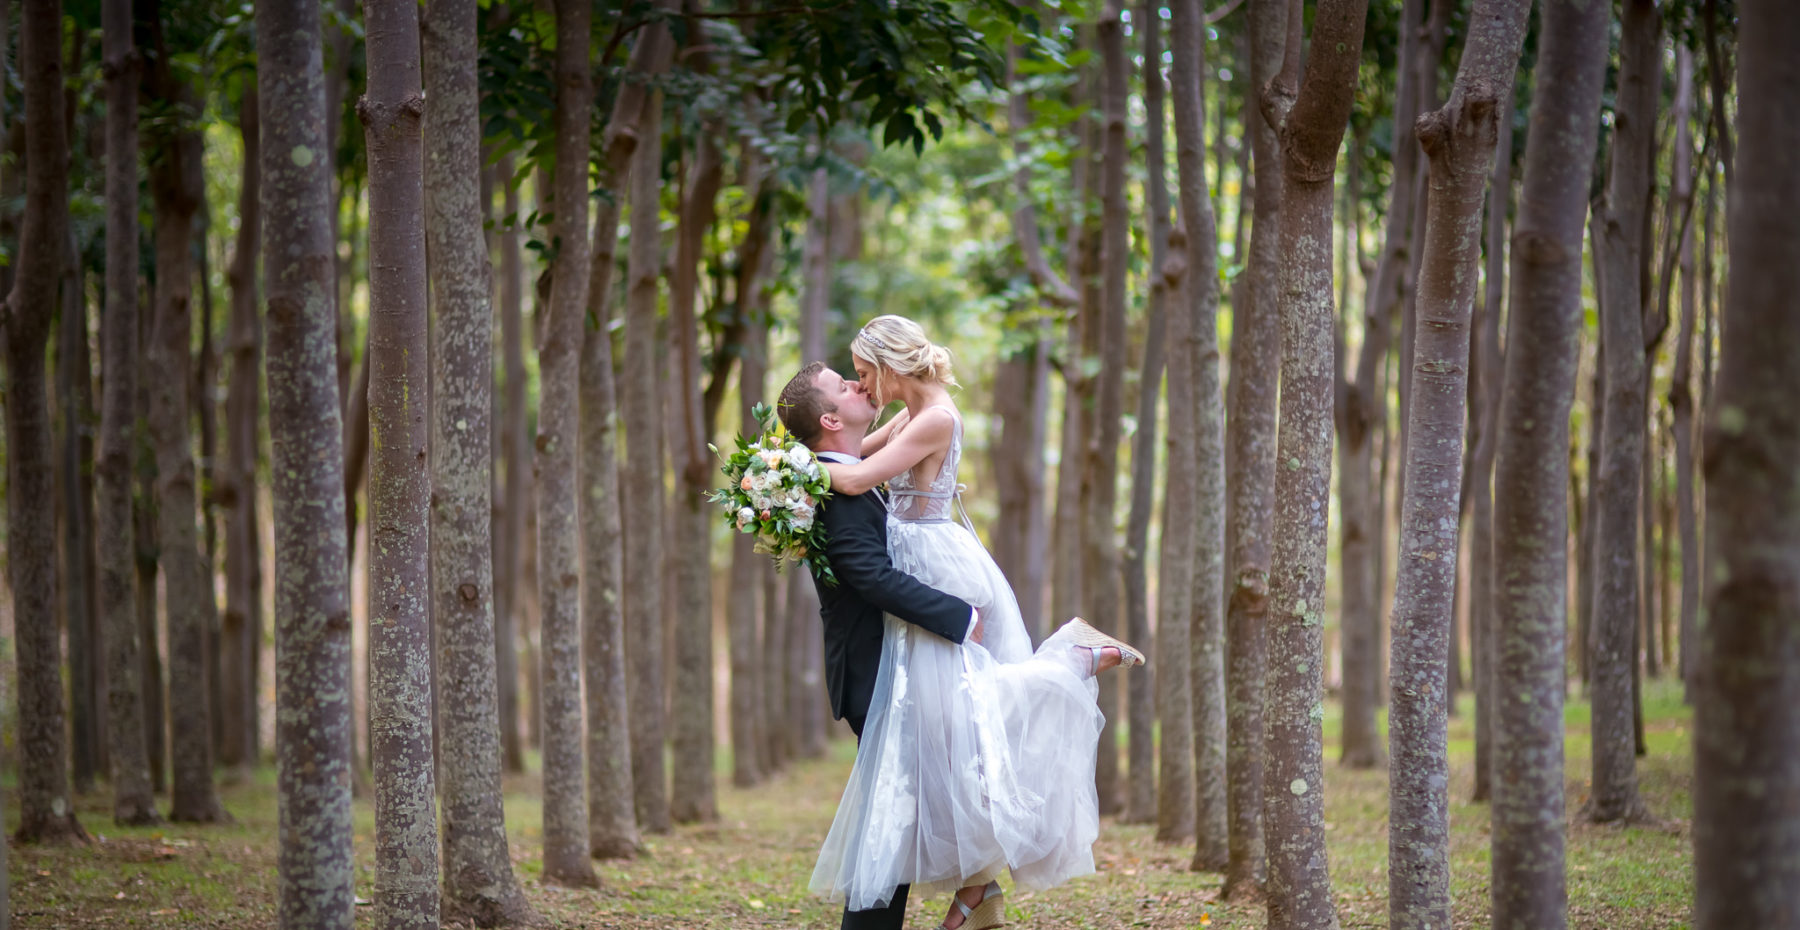 Newlyweds share their first kiss sealing their vows at a Botanical Garden wedding on Kauai.